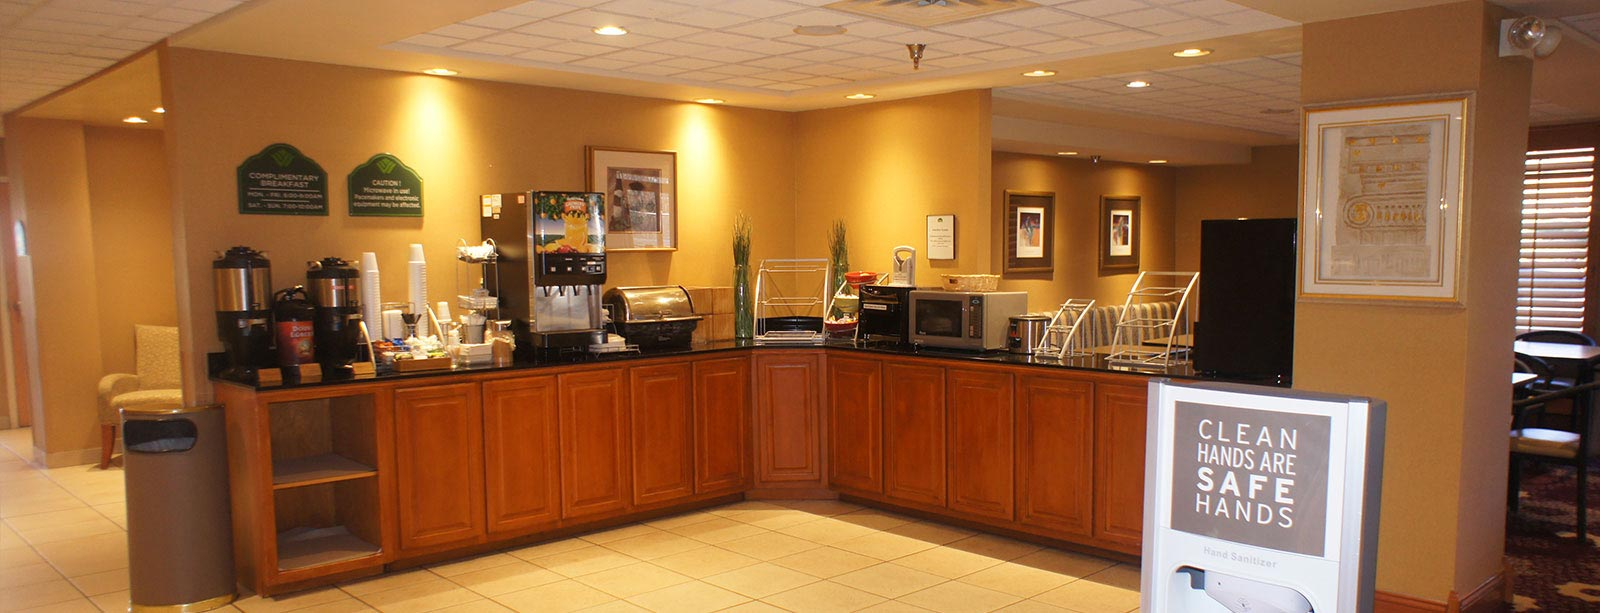 Wingate by Wyndham Chattanooga Hotel, Tennessee